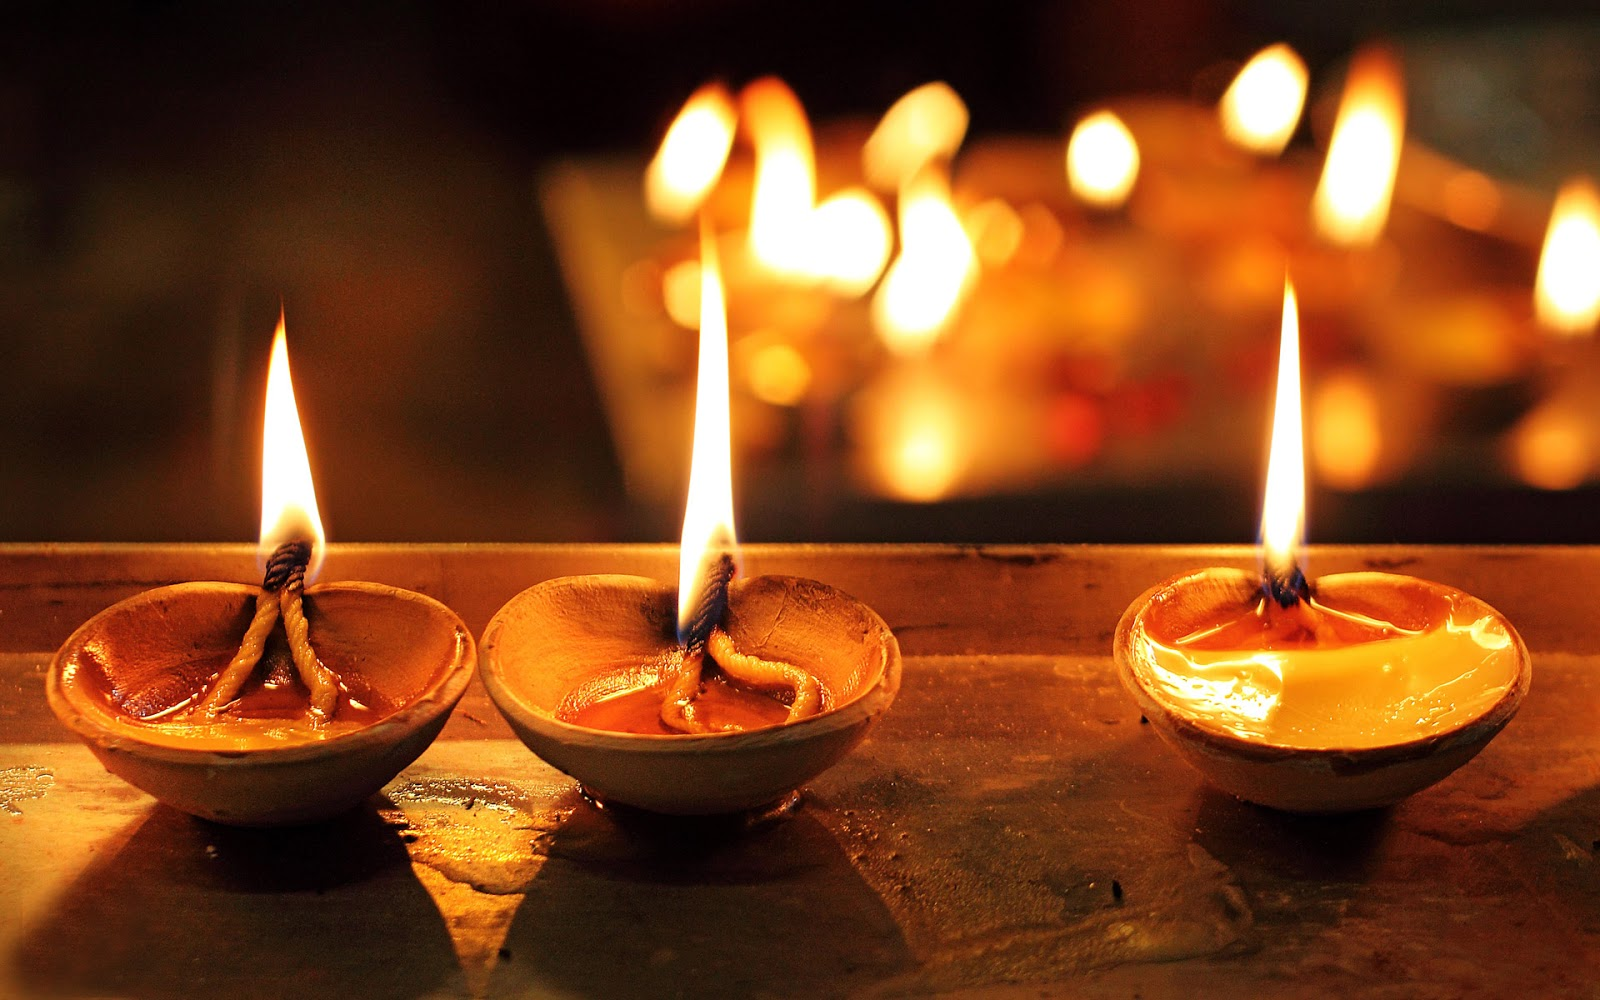 Happy diwali 2015 images HD